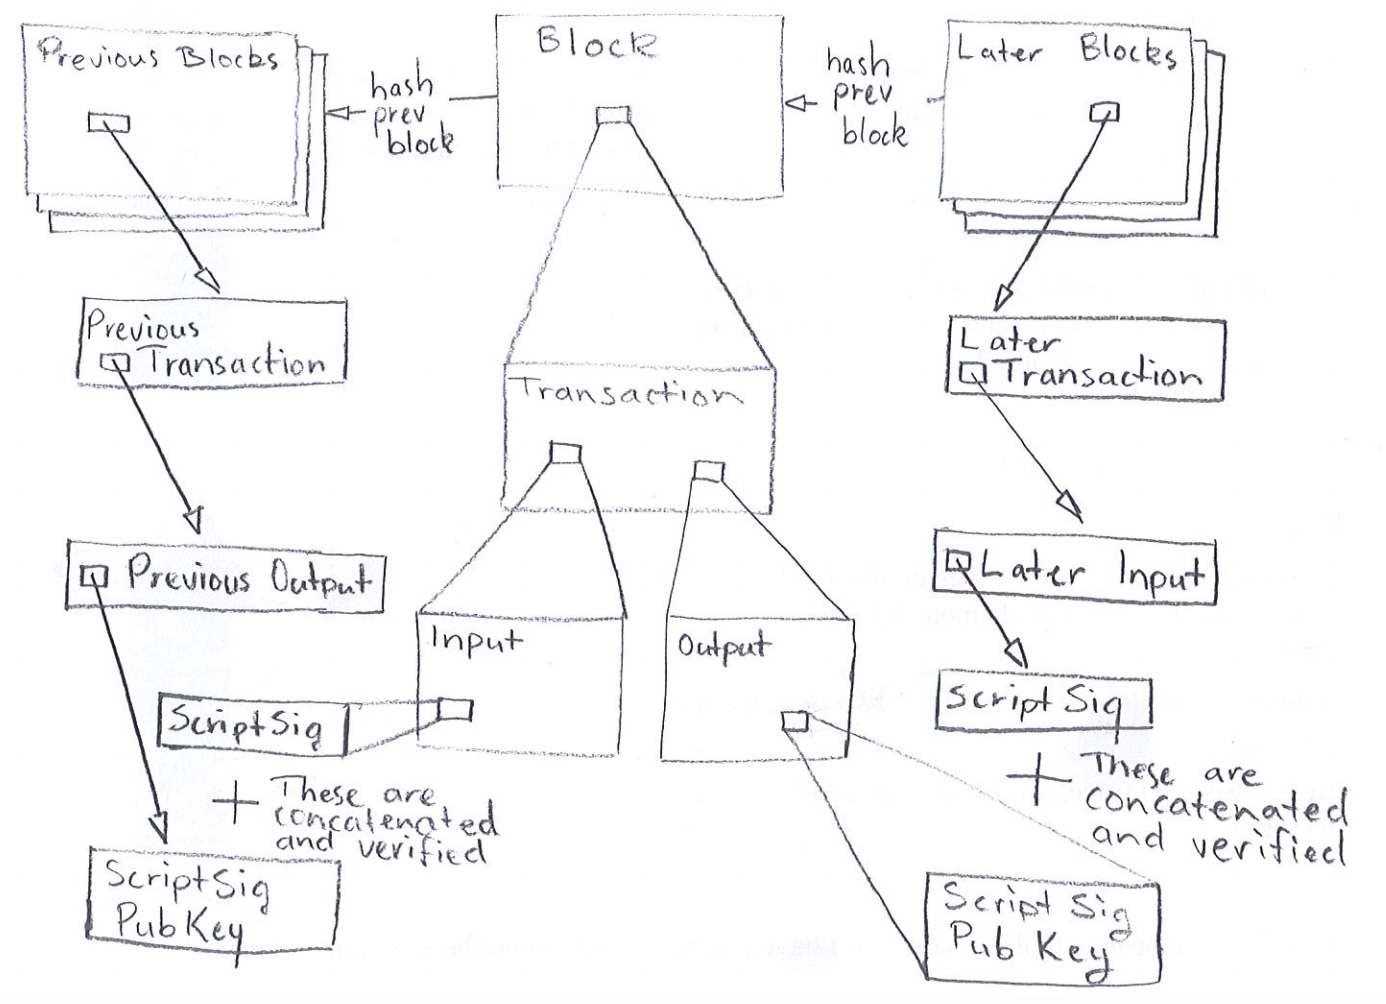 Diagram showing a transaction, it's parts, and how they relate to earlier and later transactions